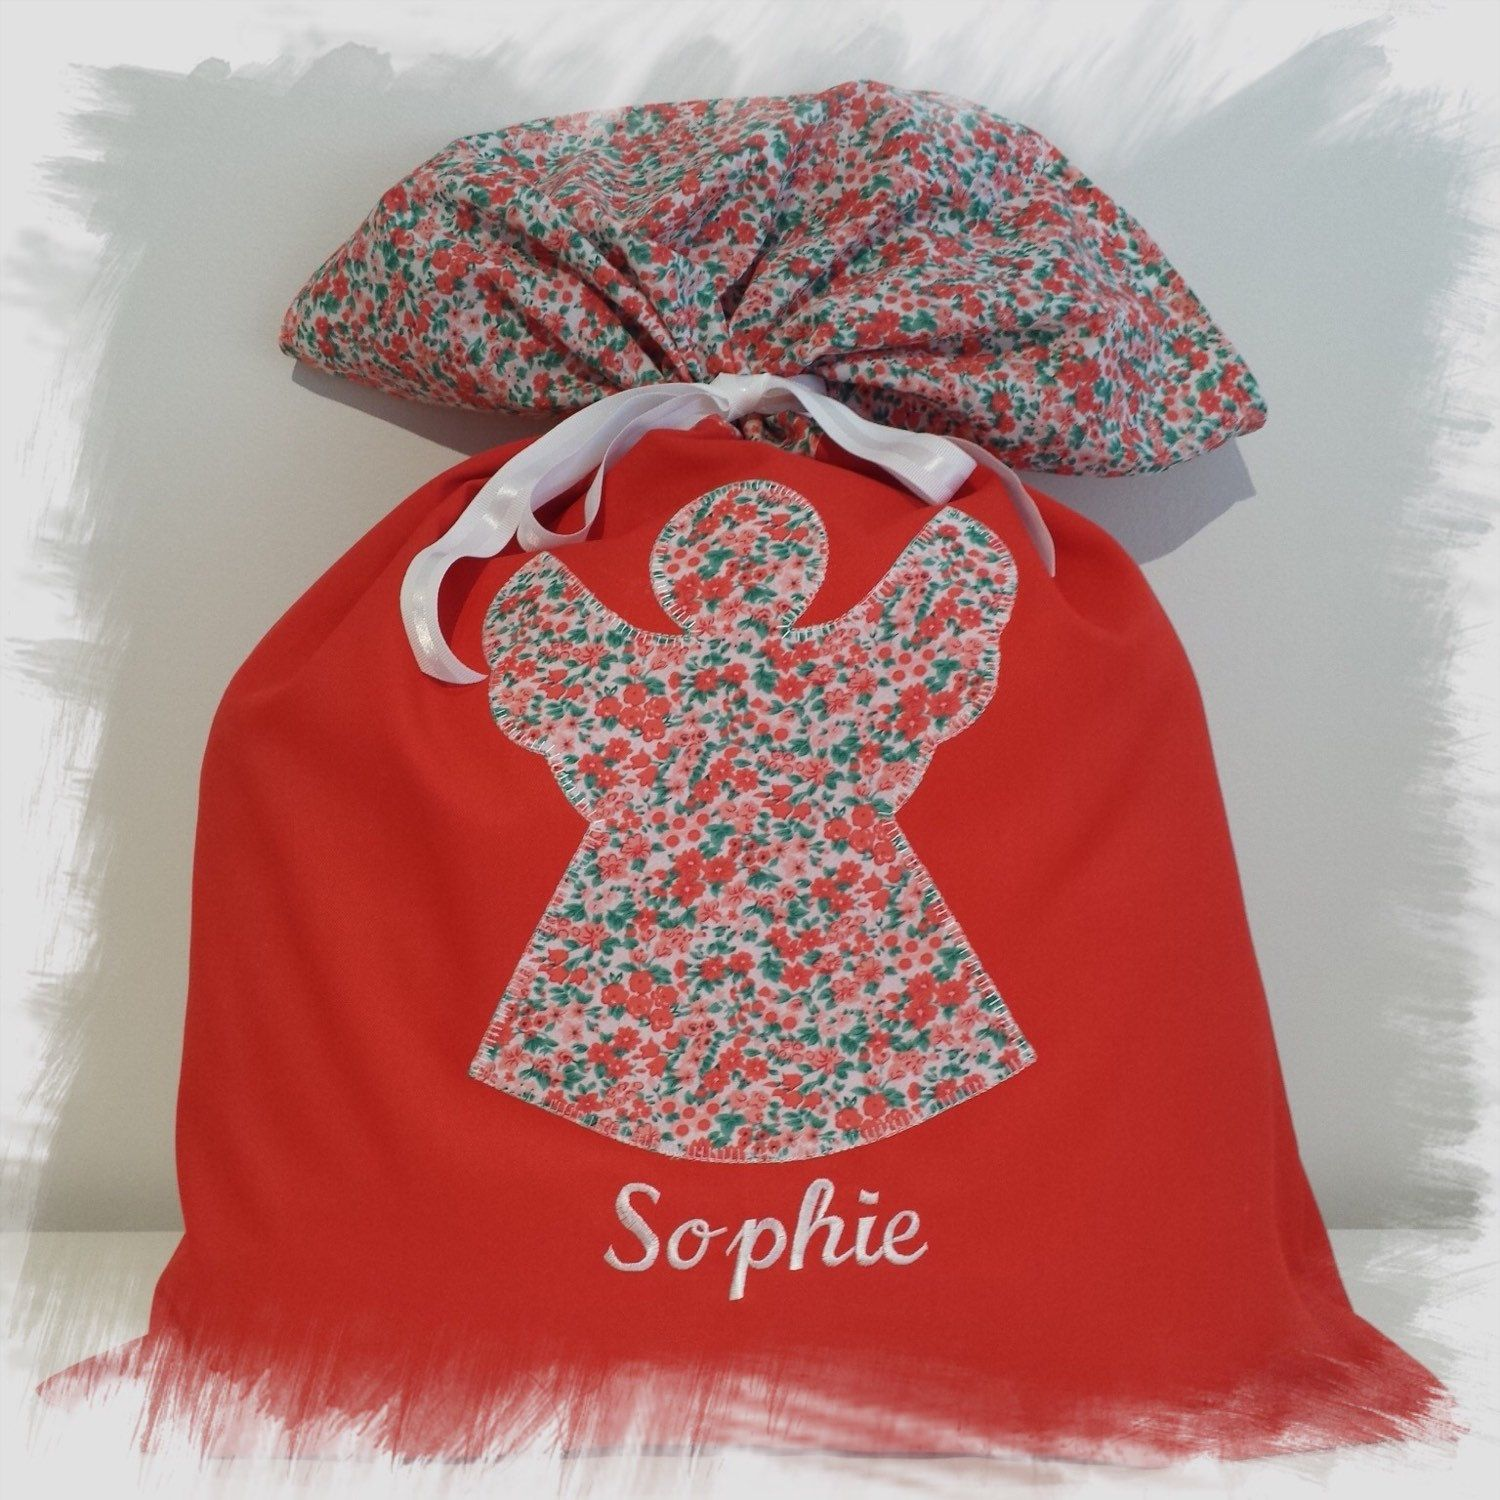 Santa Sack made by Shelley using using the Christmas Angel Naive Applique Design For Large Hoops. Shelly sells her Santa Sacks on her Facebook page 'Sweet Little Santa Sacks'. Thanks to Shelley for providing her artwork for me to digitise these designs.